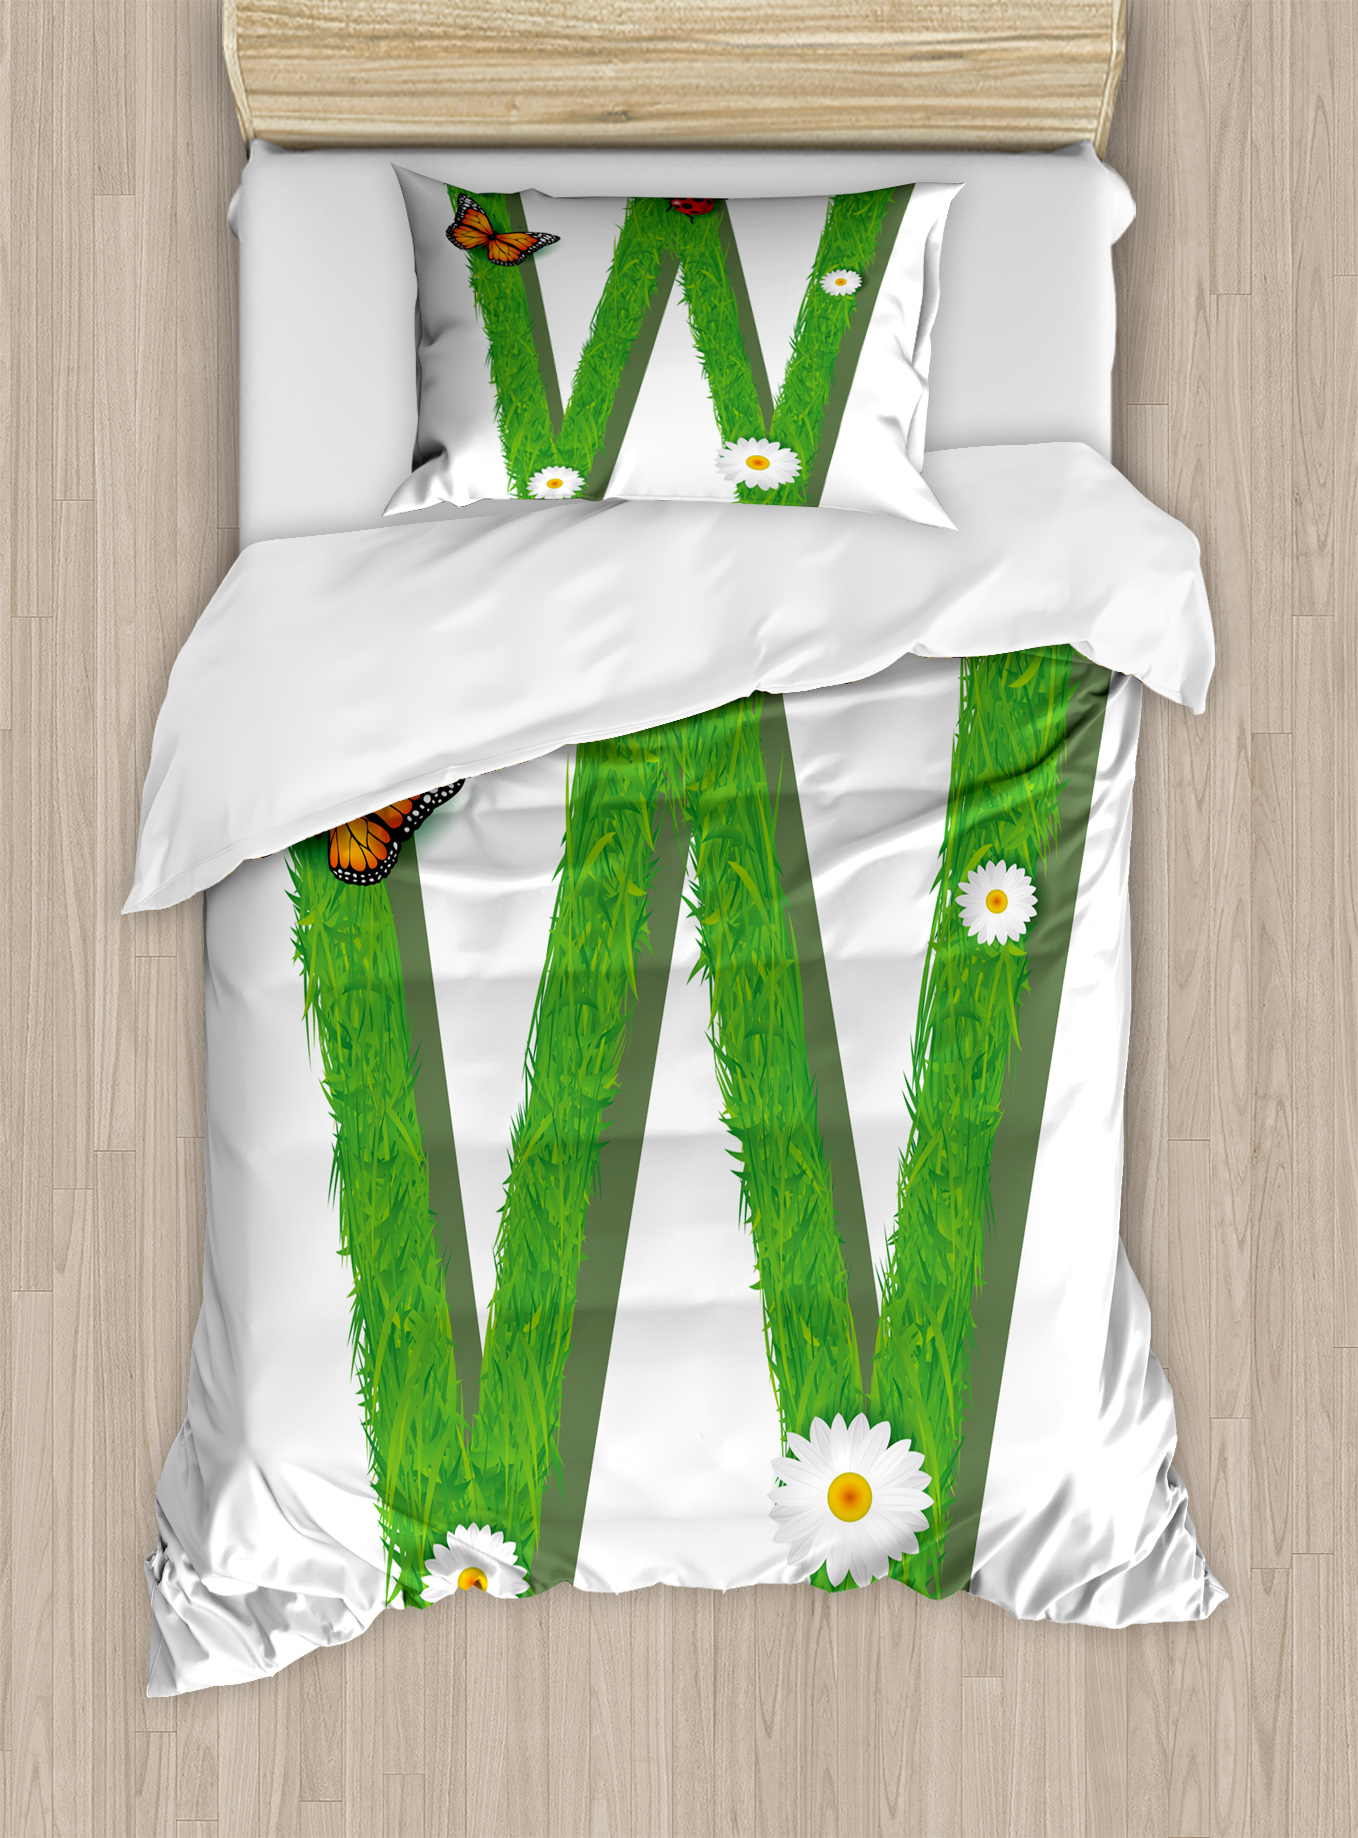 Letter W Twin Size Duvet Cover Set, Uppercase W Nature Influences Butterfly Freedom... by Kozmos